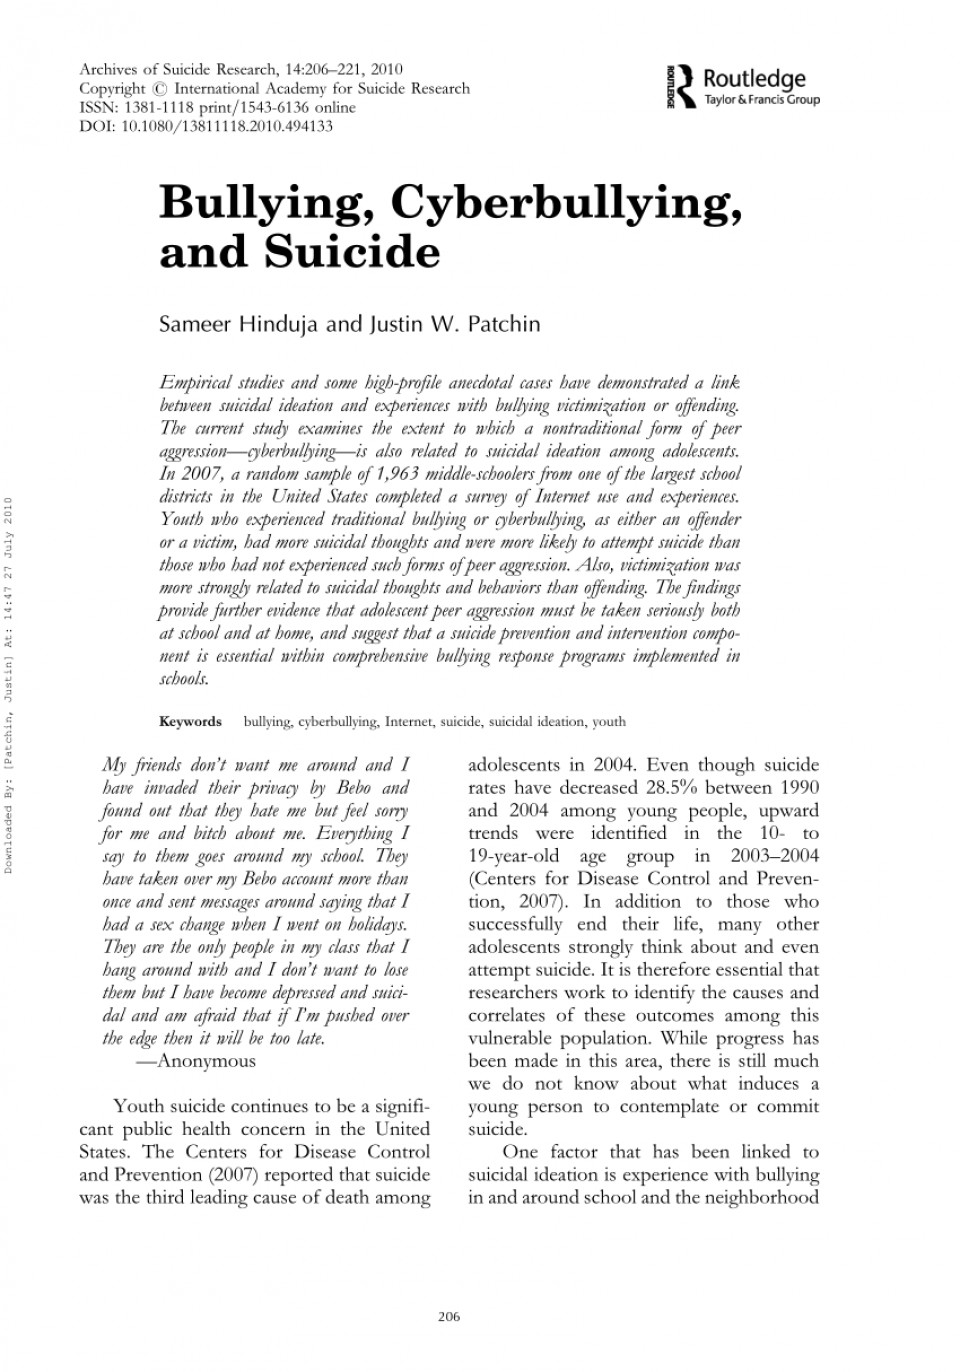 003 Research Paper Largepreview Cyberbullying Unique Pdf Effects Of 960